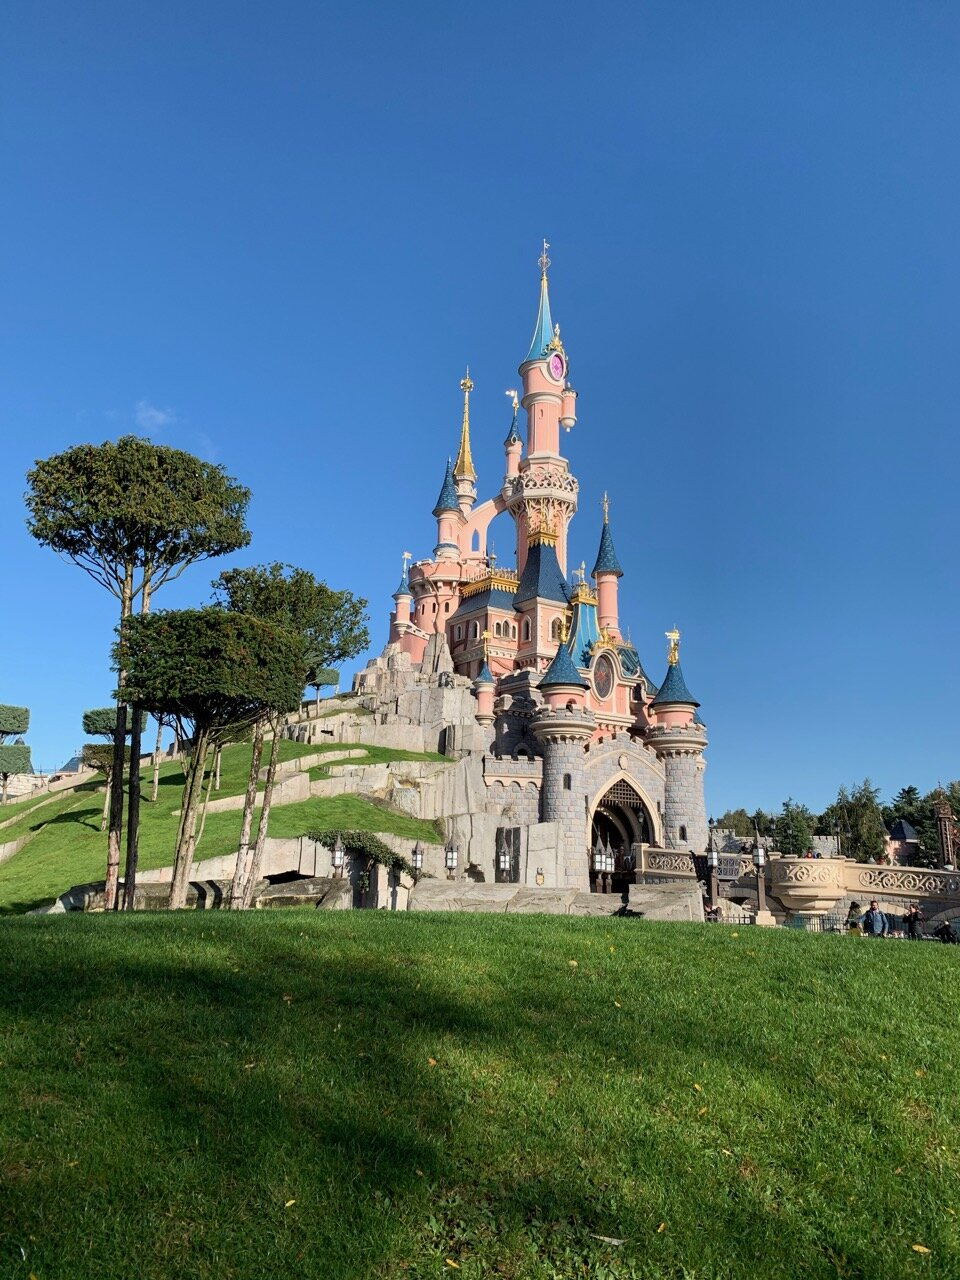 Disneyland Paris Annual Pass Review 2020 Mouse Hacking